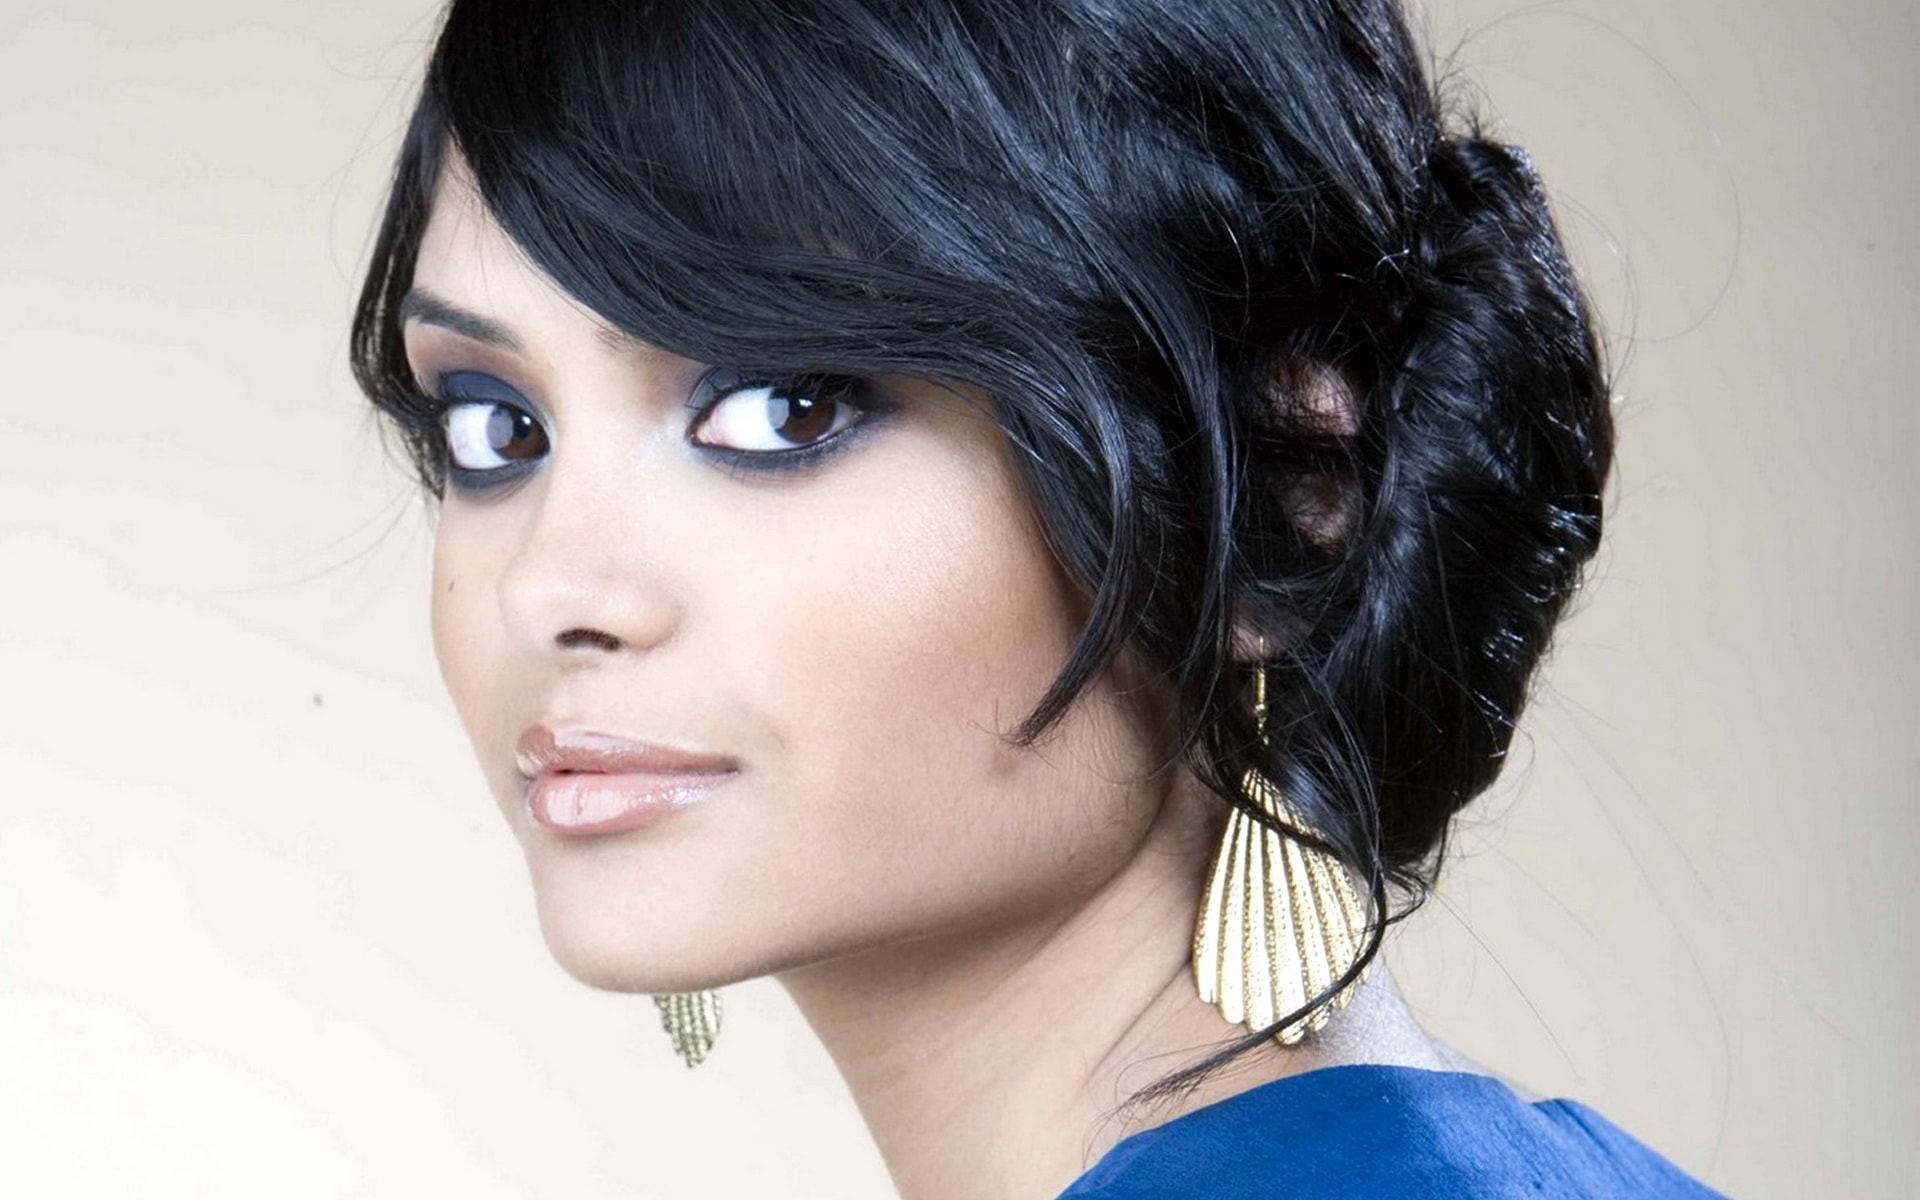 Afshan azad hd desktop wallpapers 7wallpapers afshan azad wallpapers afshan azad widescreen wallpapers thecheapjerseys Choice Image